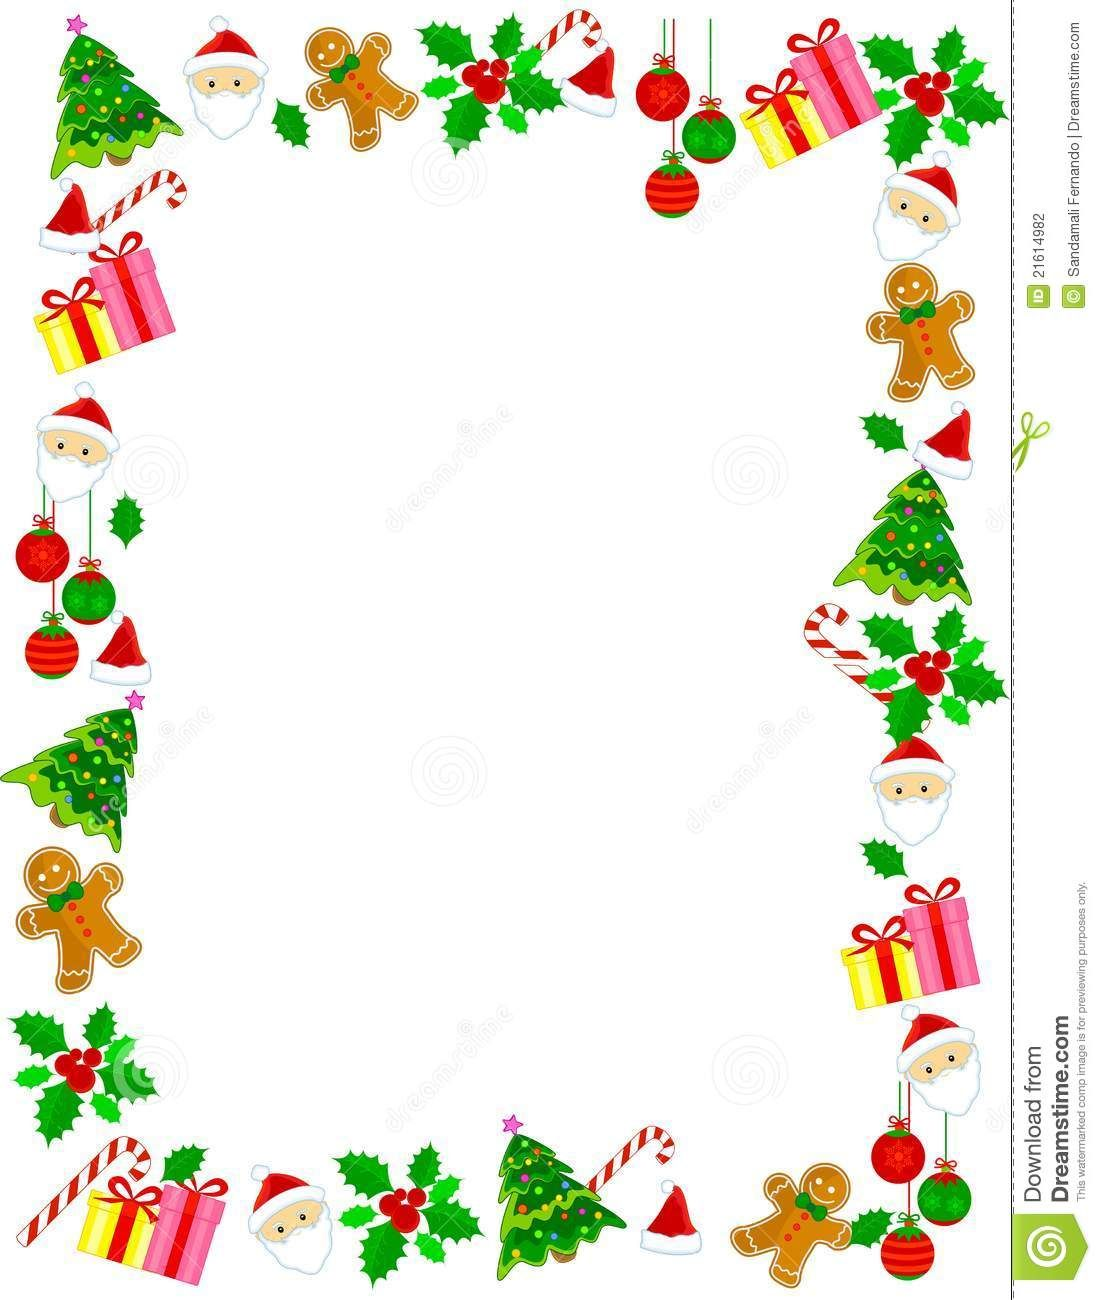 Christmas Border Frame Download From Over 50 Million High Quality Stock Photos Images Vectors Free Christmas Borders Christmas Lettering Christmas Border